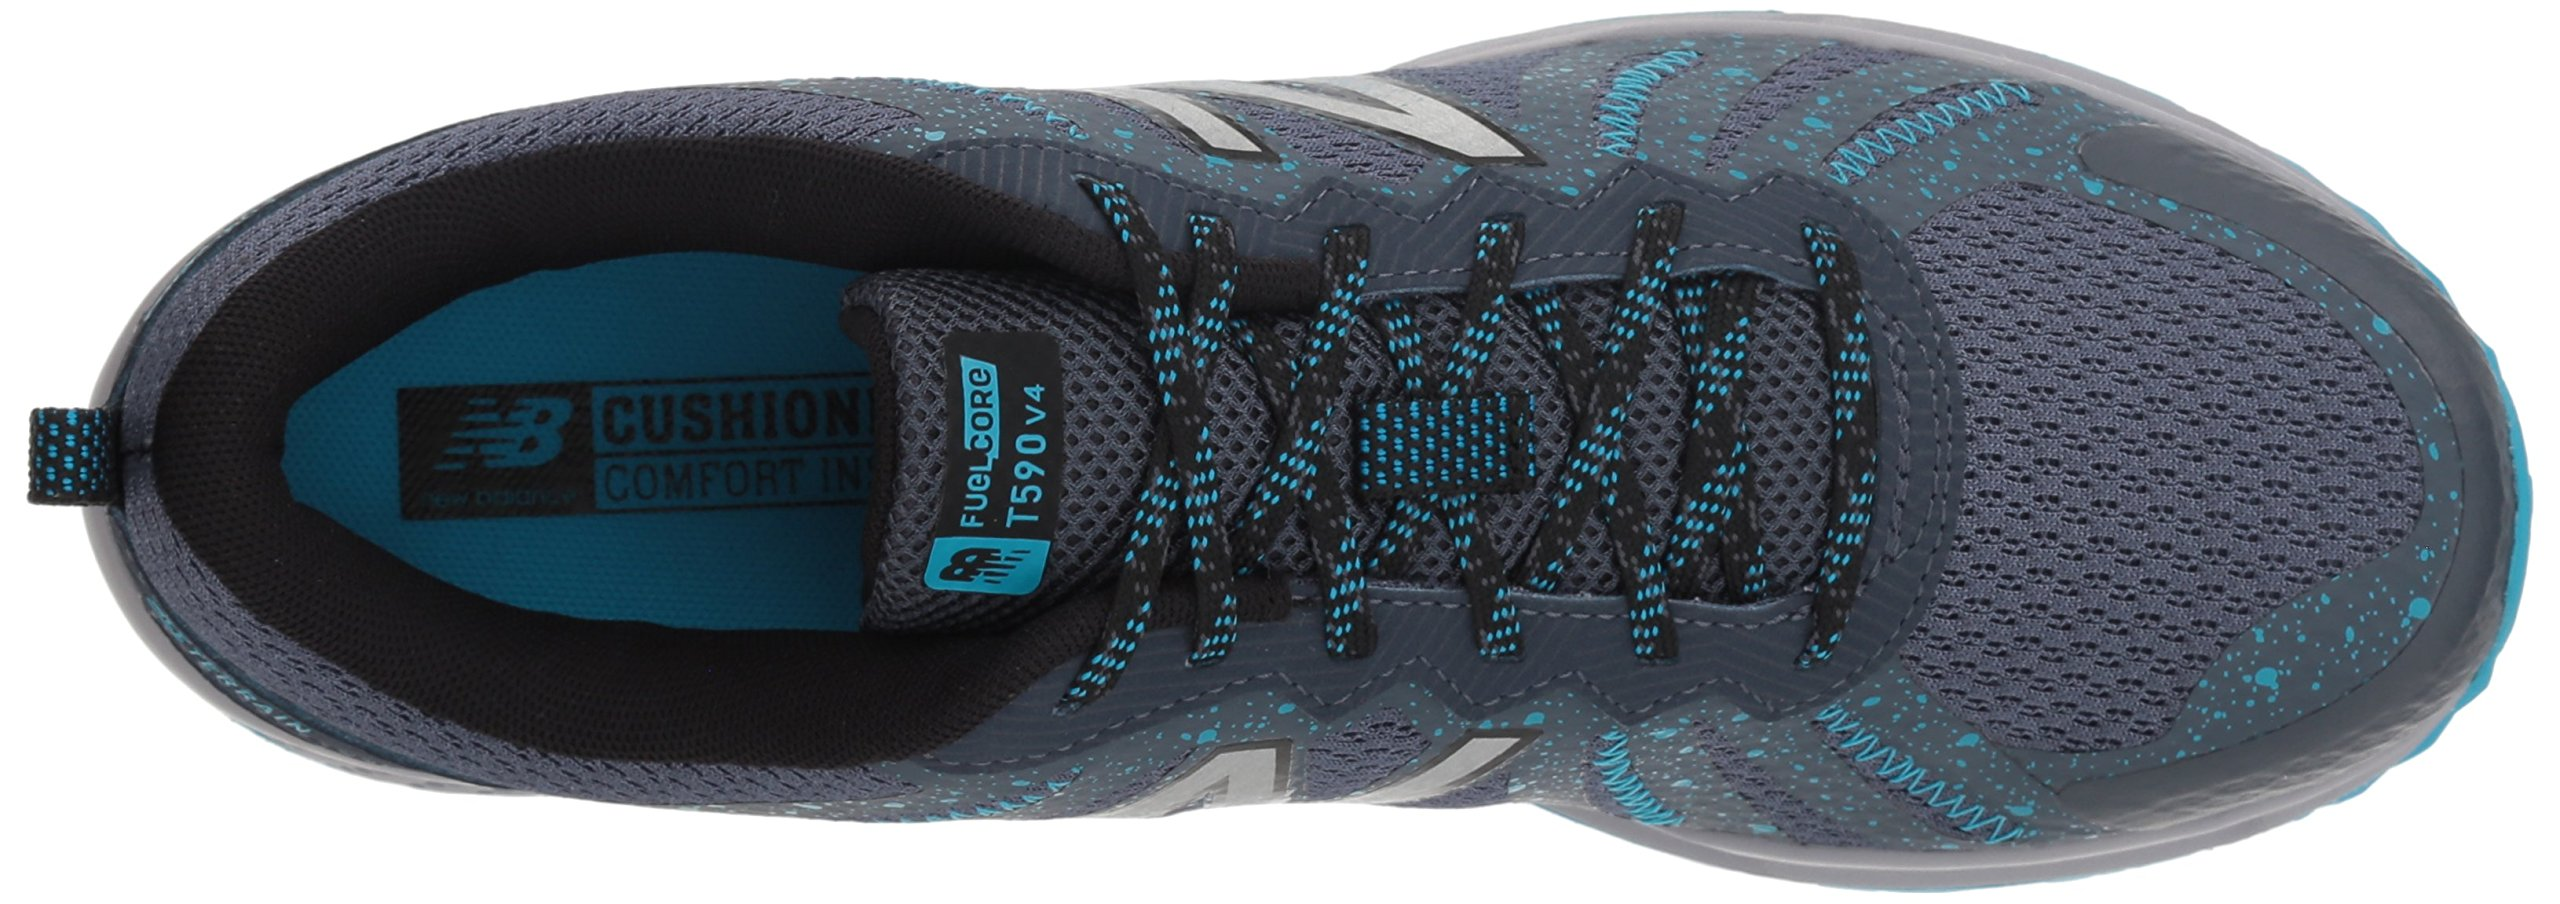 New Balance Women's 590v4 FuelCore Trail Running Shoe Dark Grey 6 D US by New Balance (Image #7)